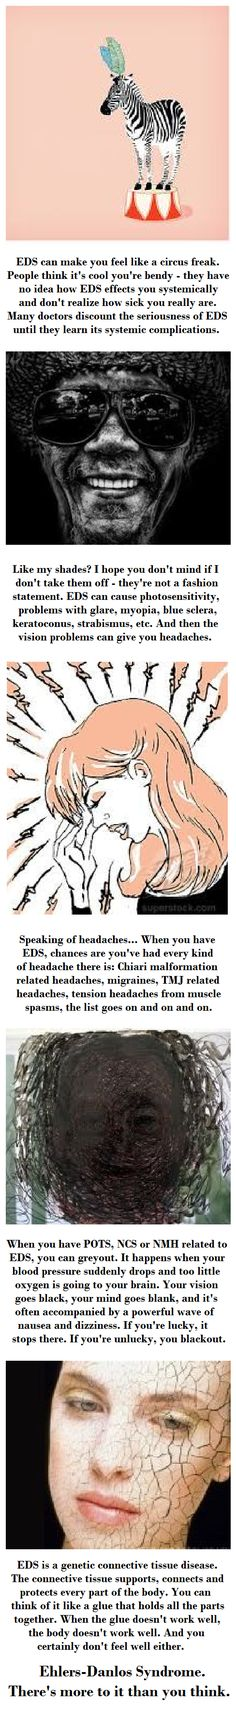 EDS / Ehlers-Danlos Syndrome: There's more to it than you think.